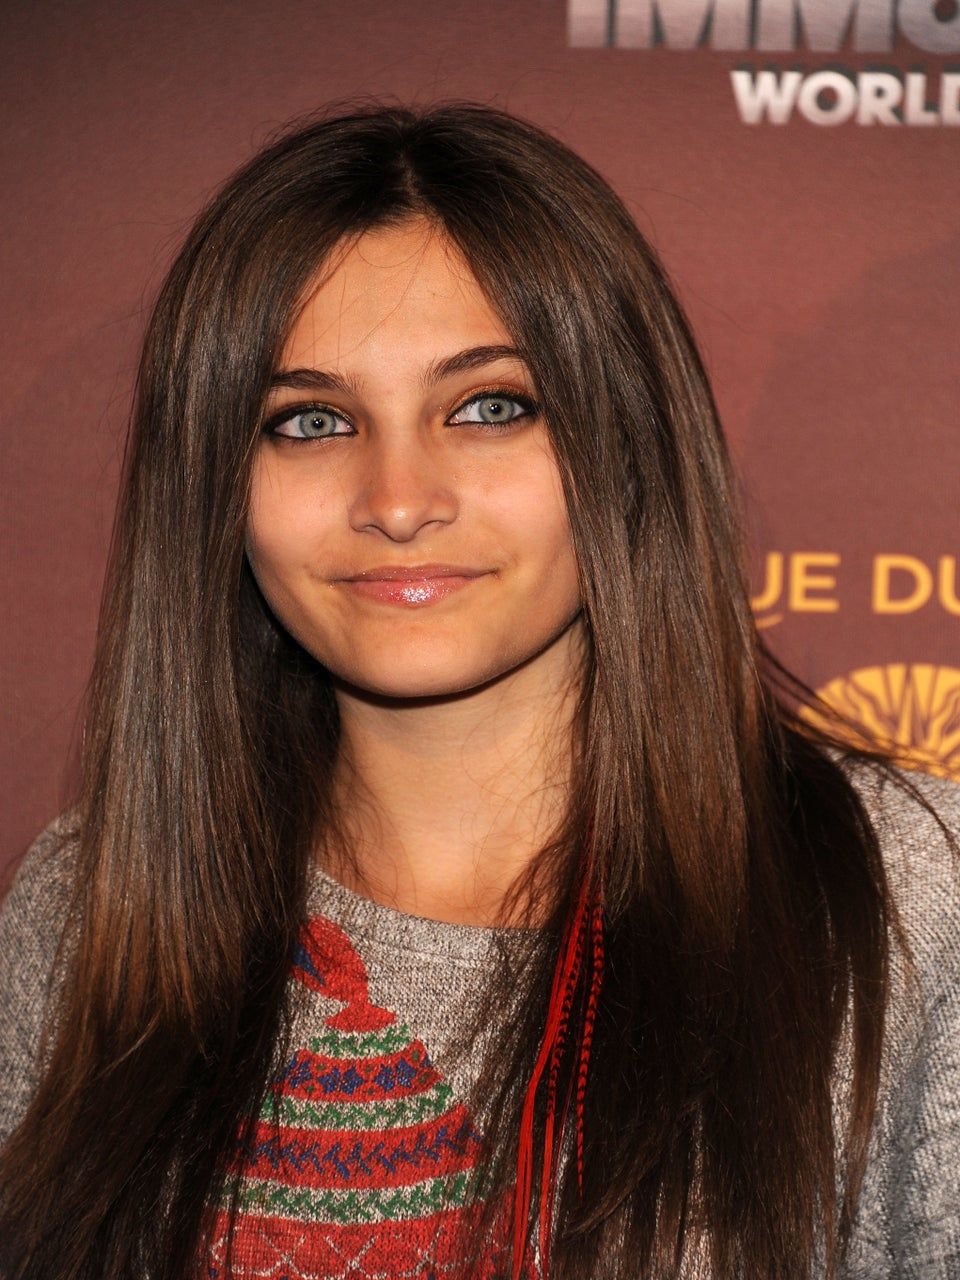 Paris Jackson: 'Some People Try to Cyberbully Me'